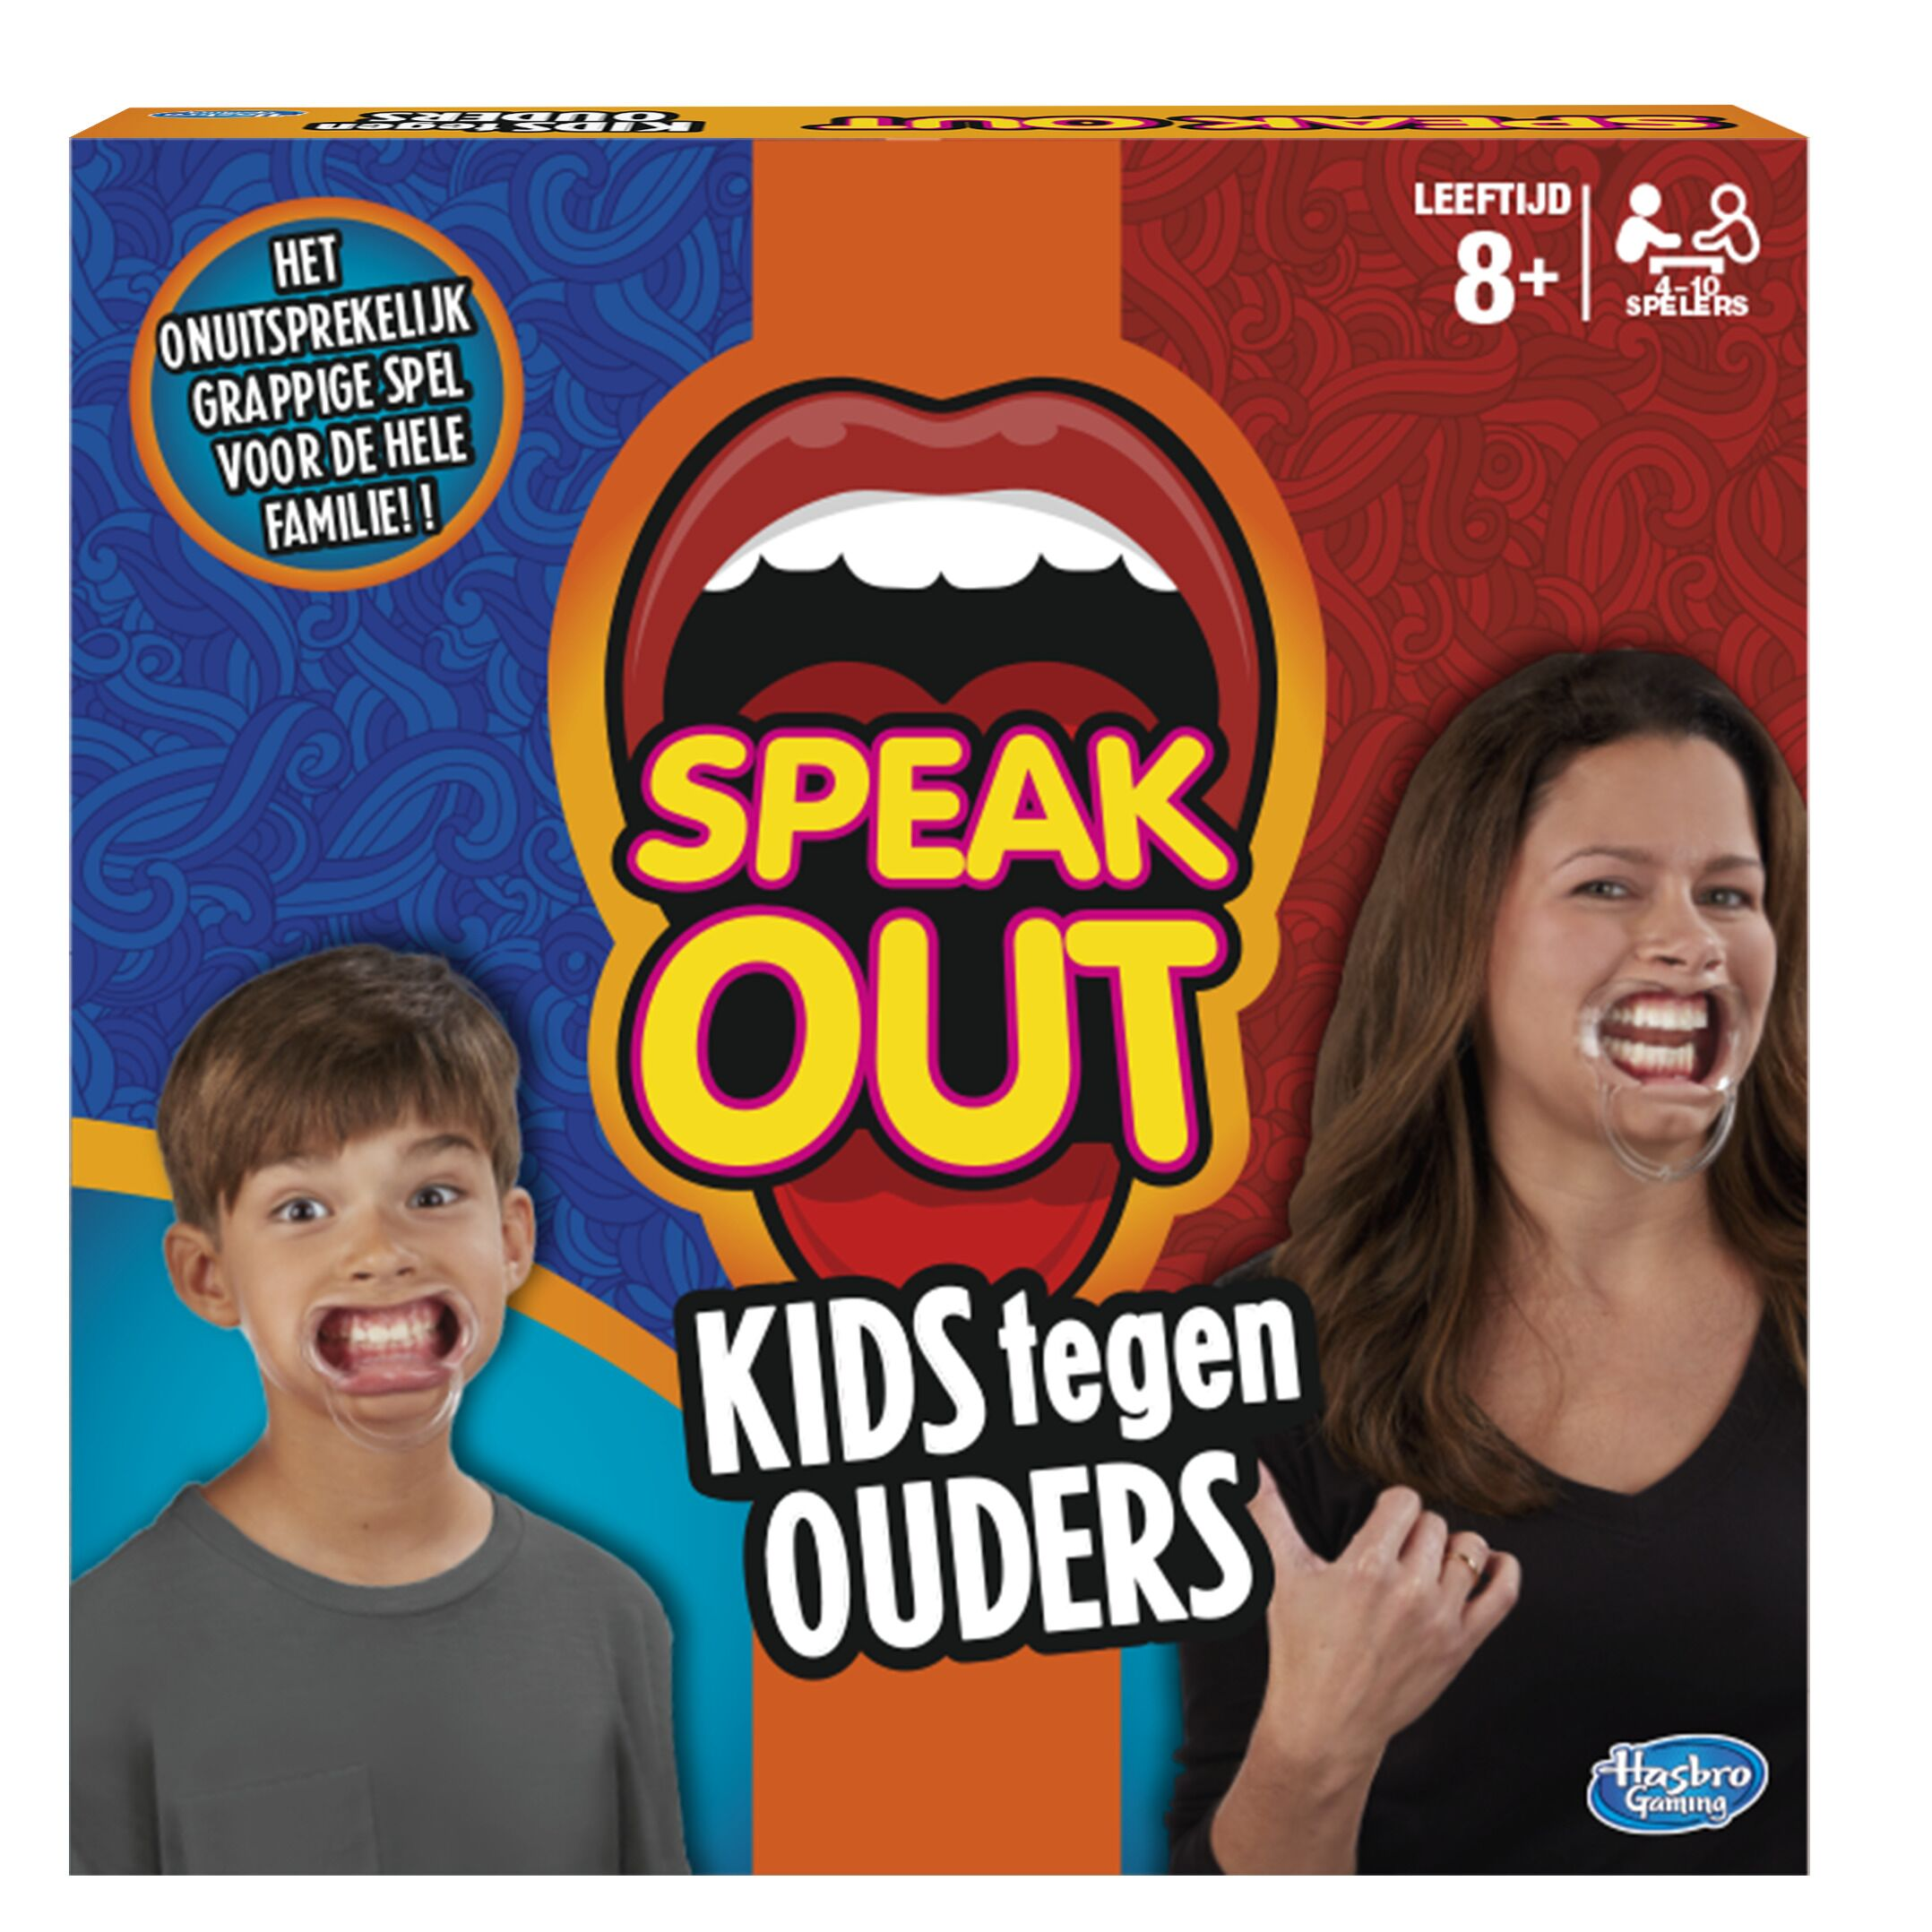 speakoutkidstegenouders-pack-front-nl_preview